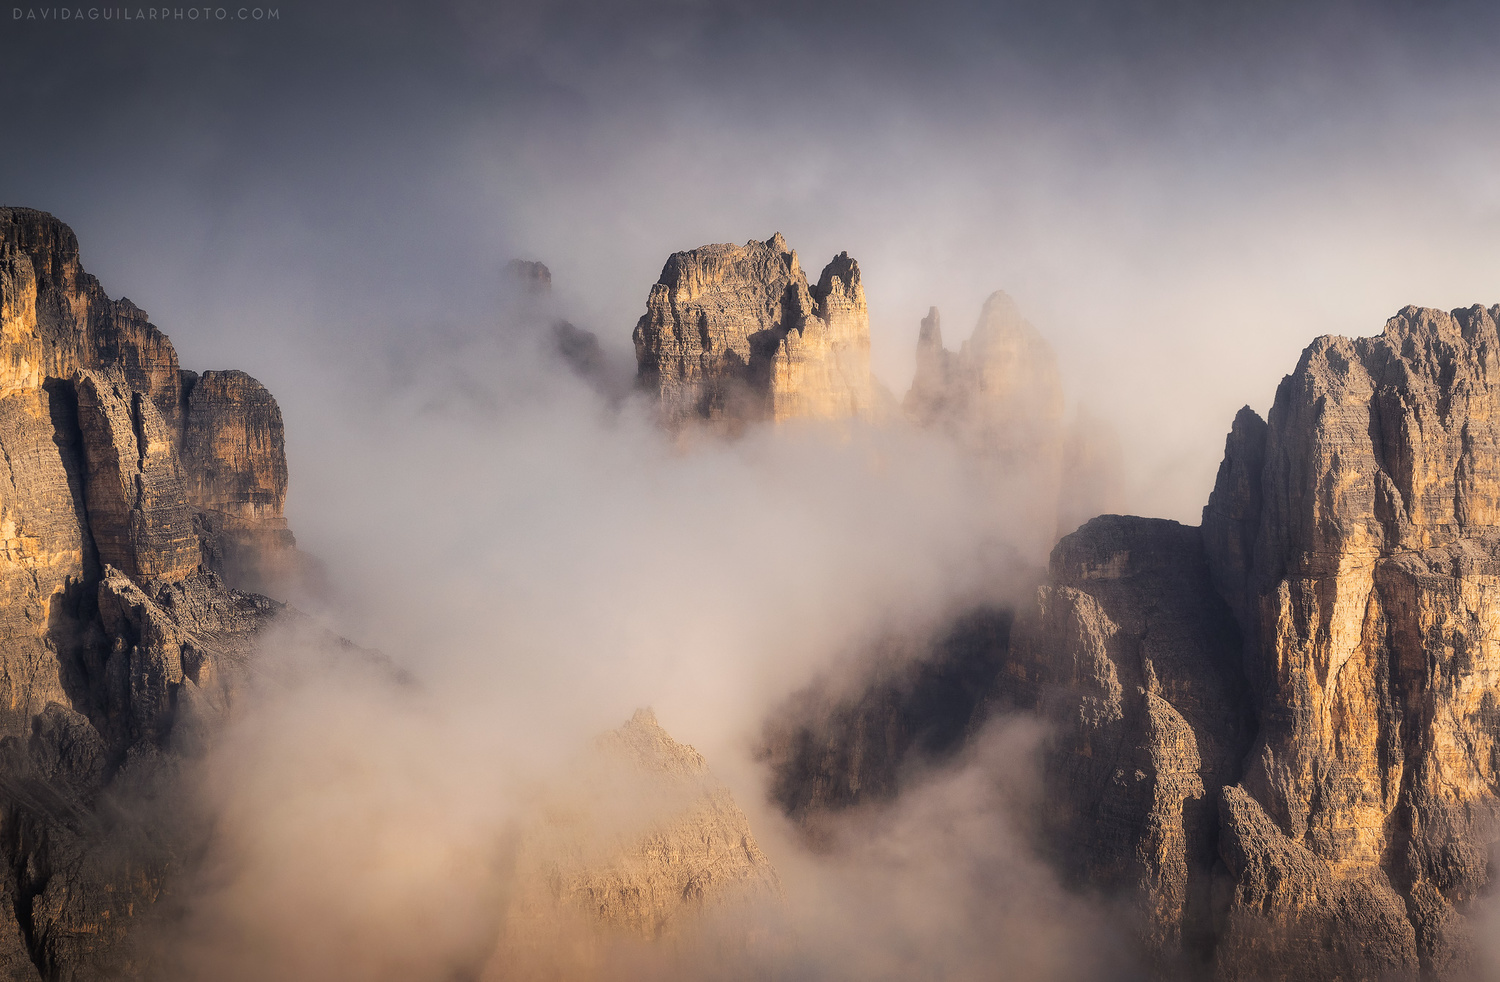 Guardians of Lavaredo by David Aguilar